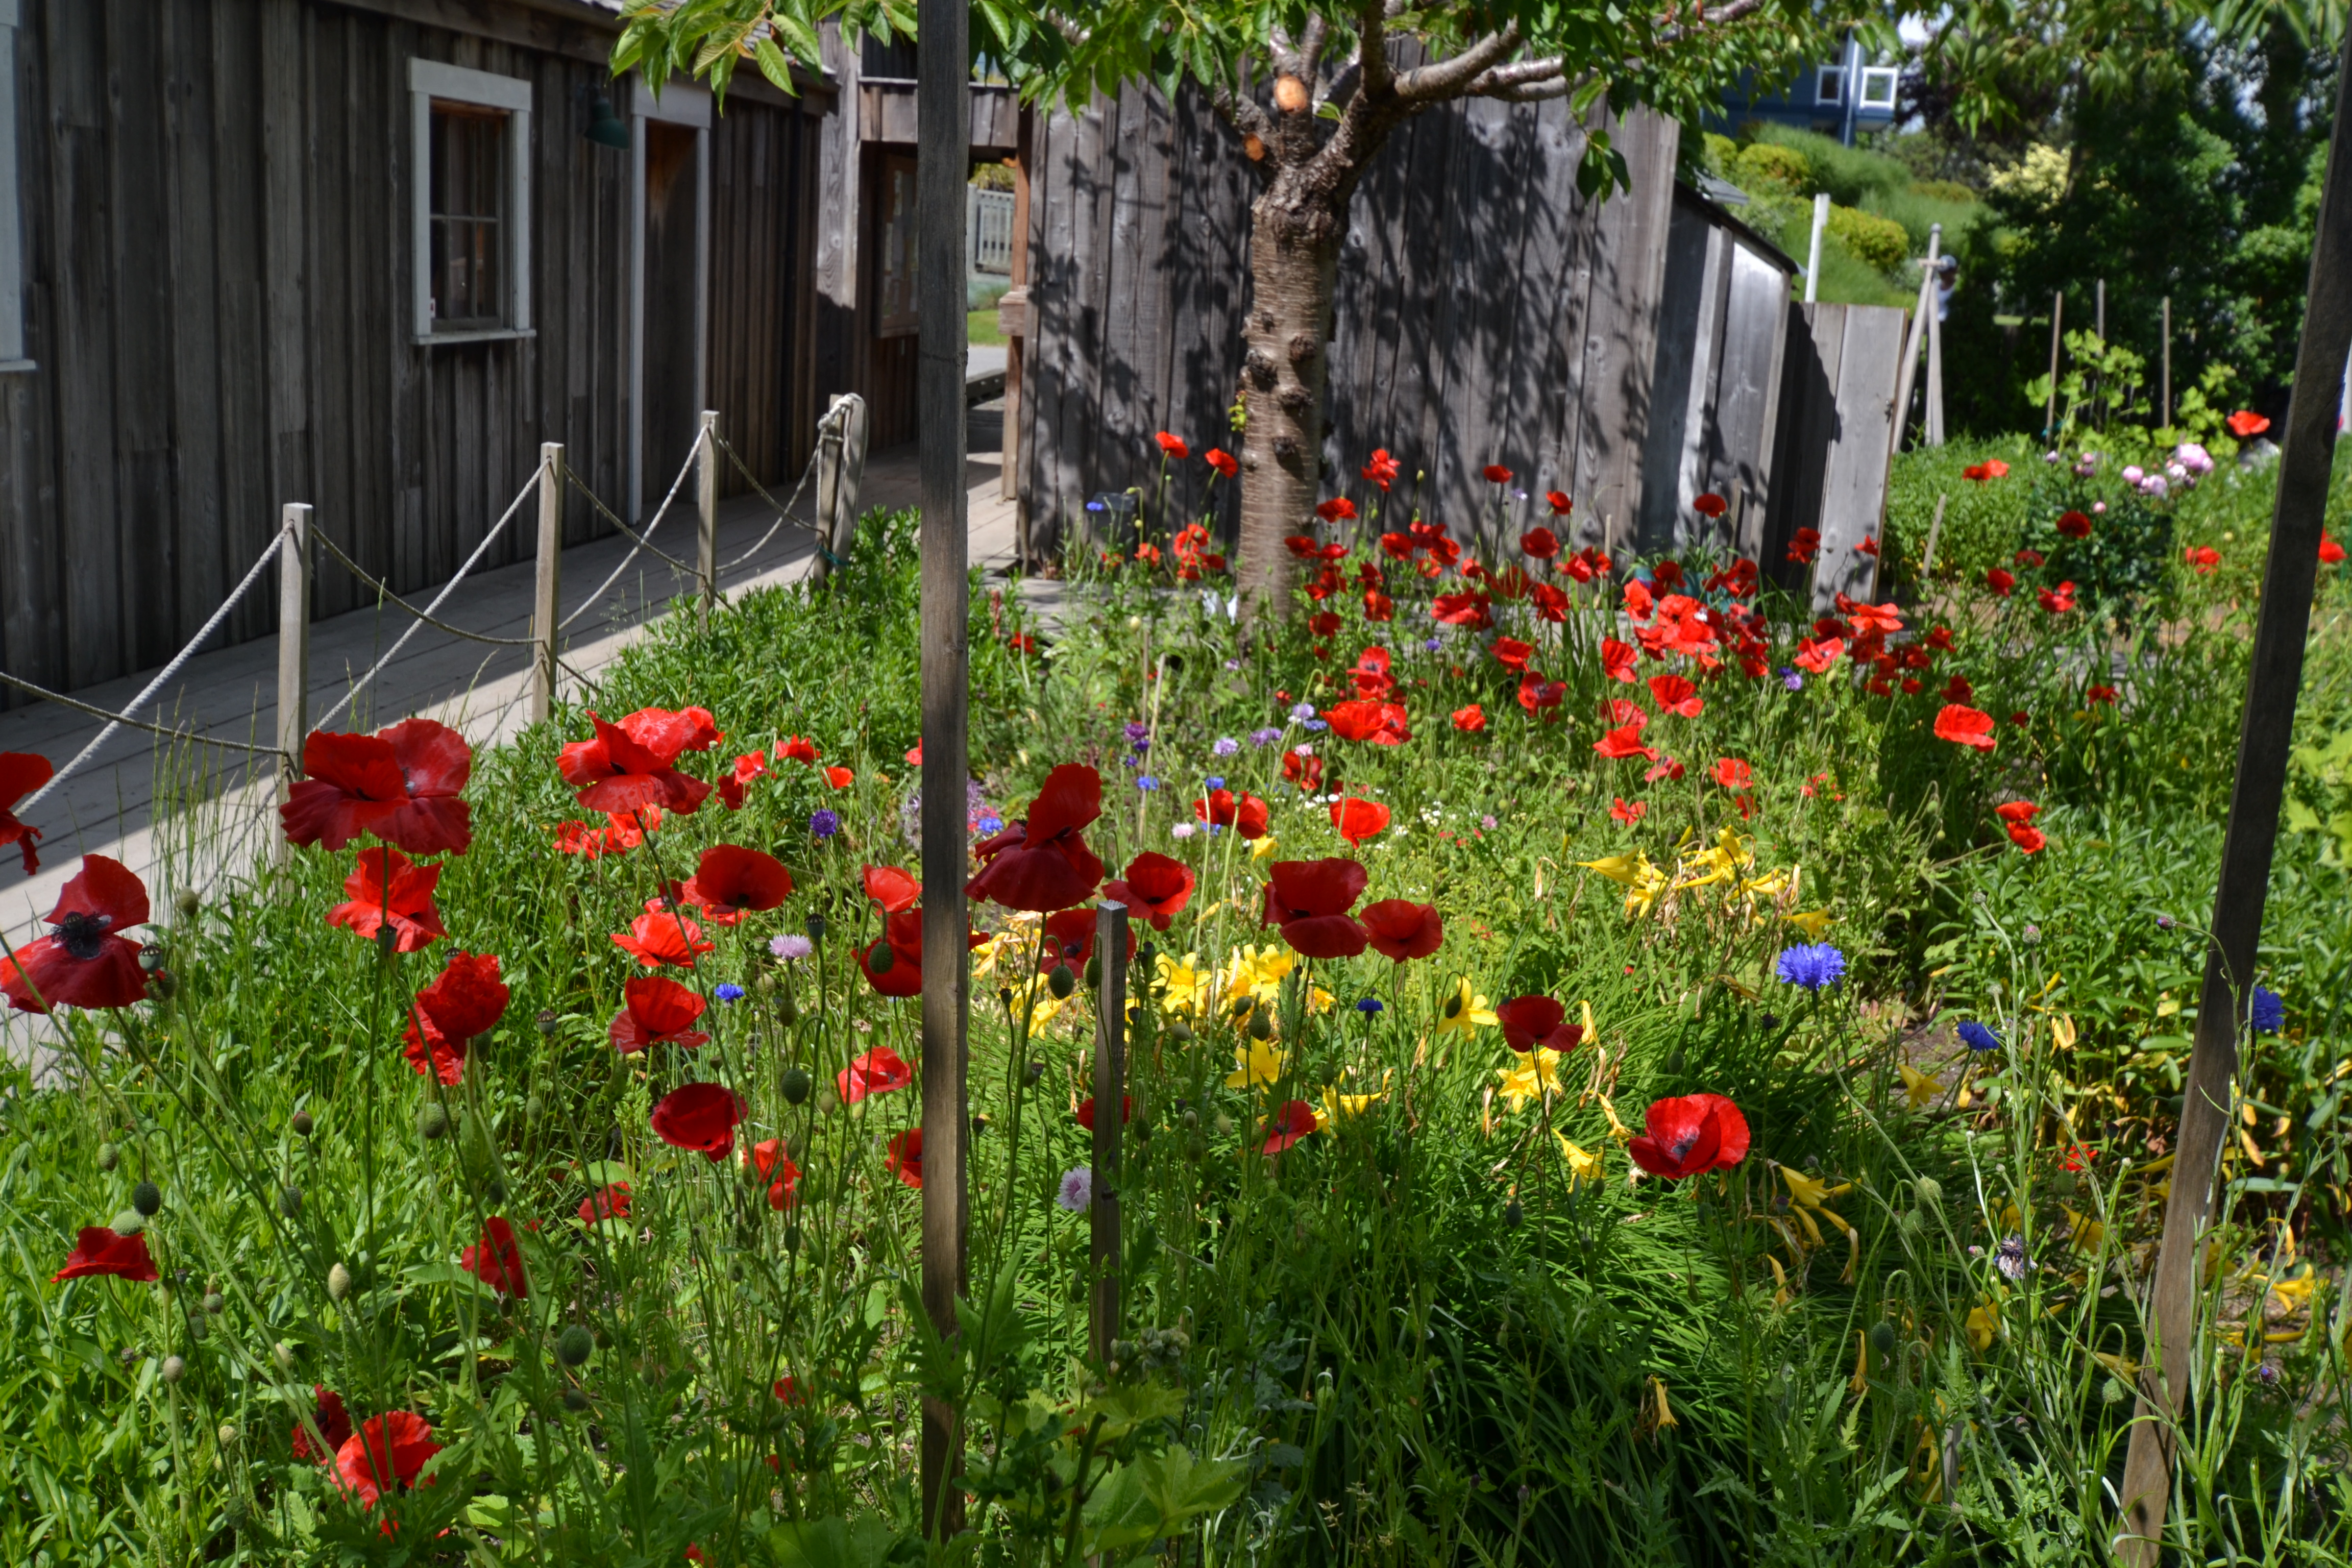 obaachan garden garden red poppies.JPG